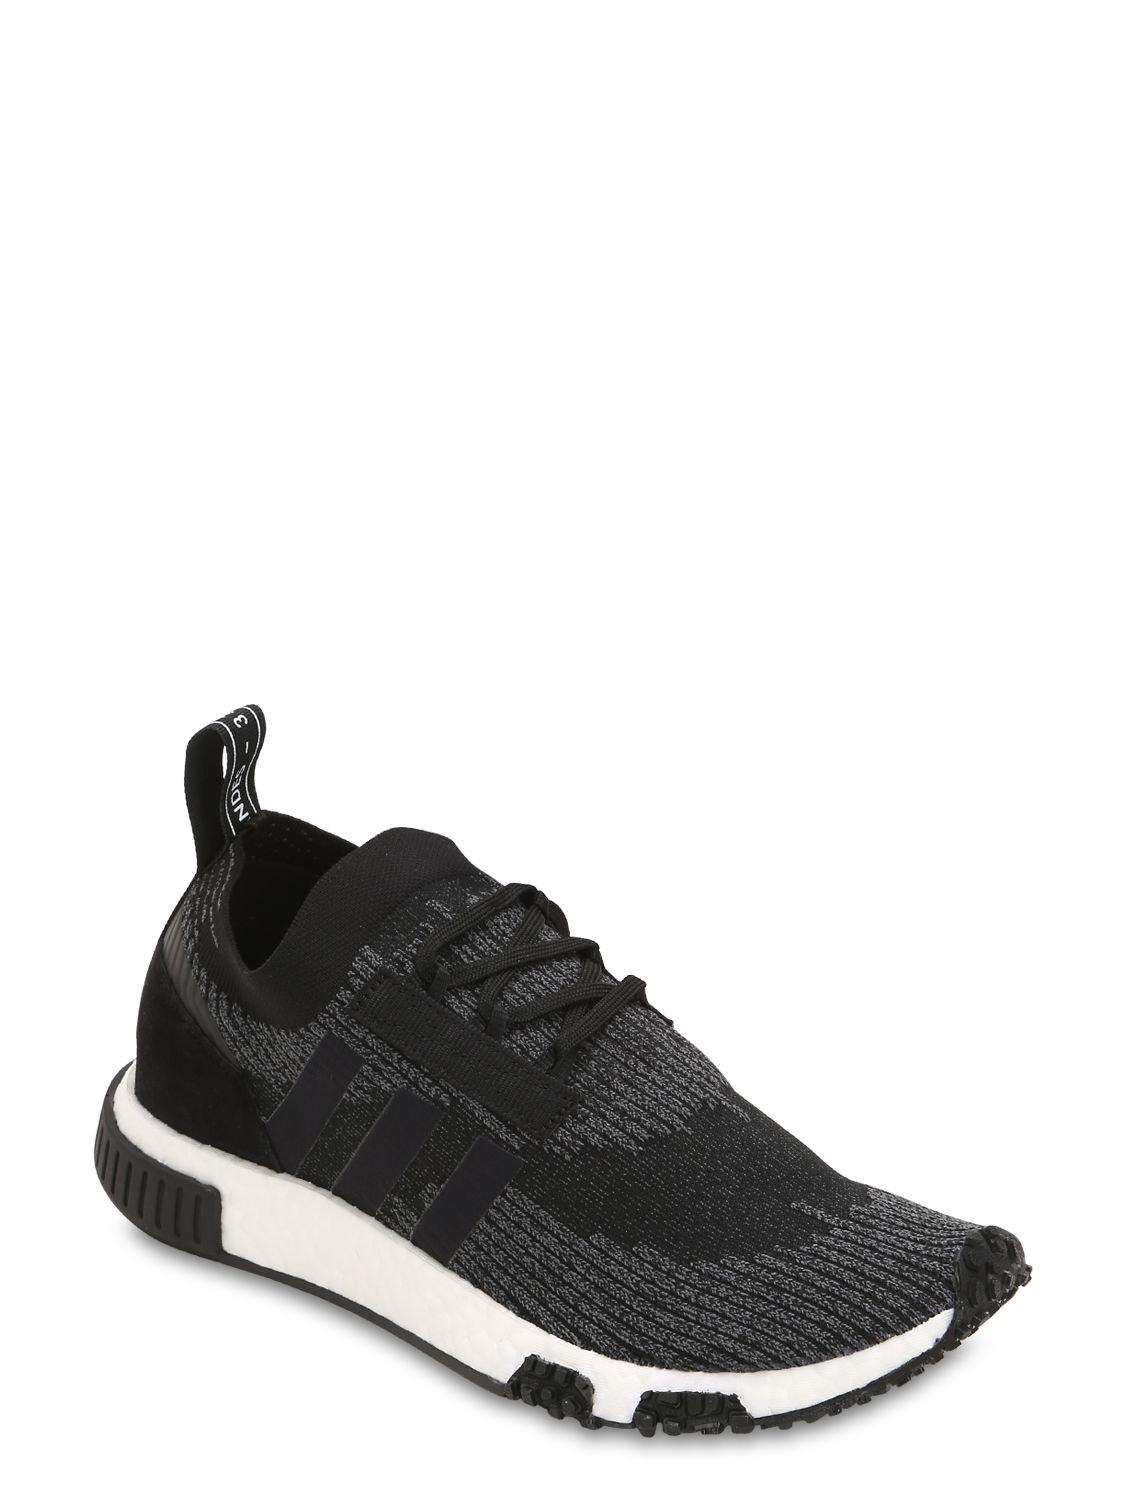 new style dbf5a 63e77 Adidas Originals Nmd Racer Primeknit Sneakers in Black for M